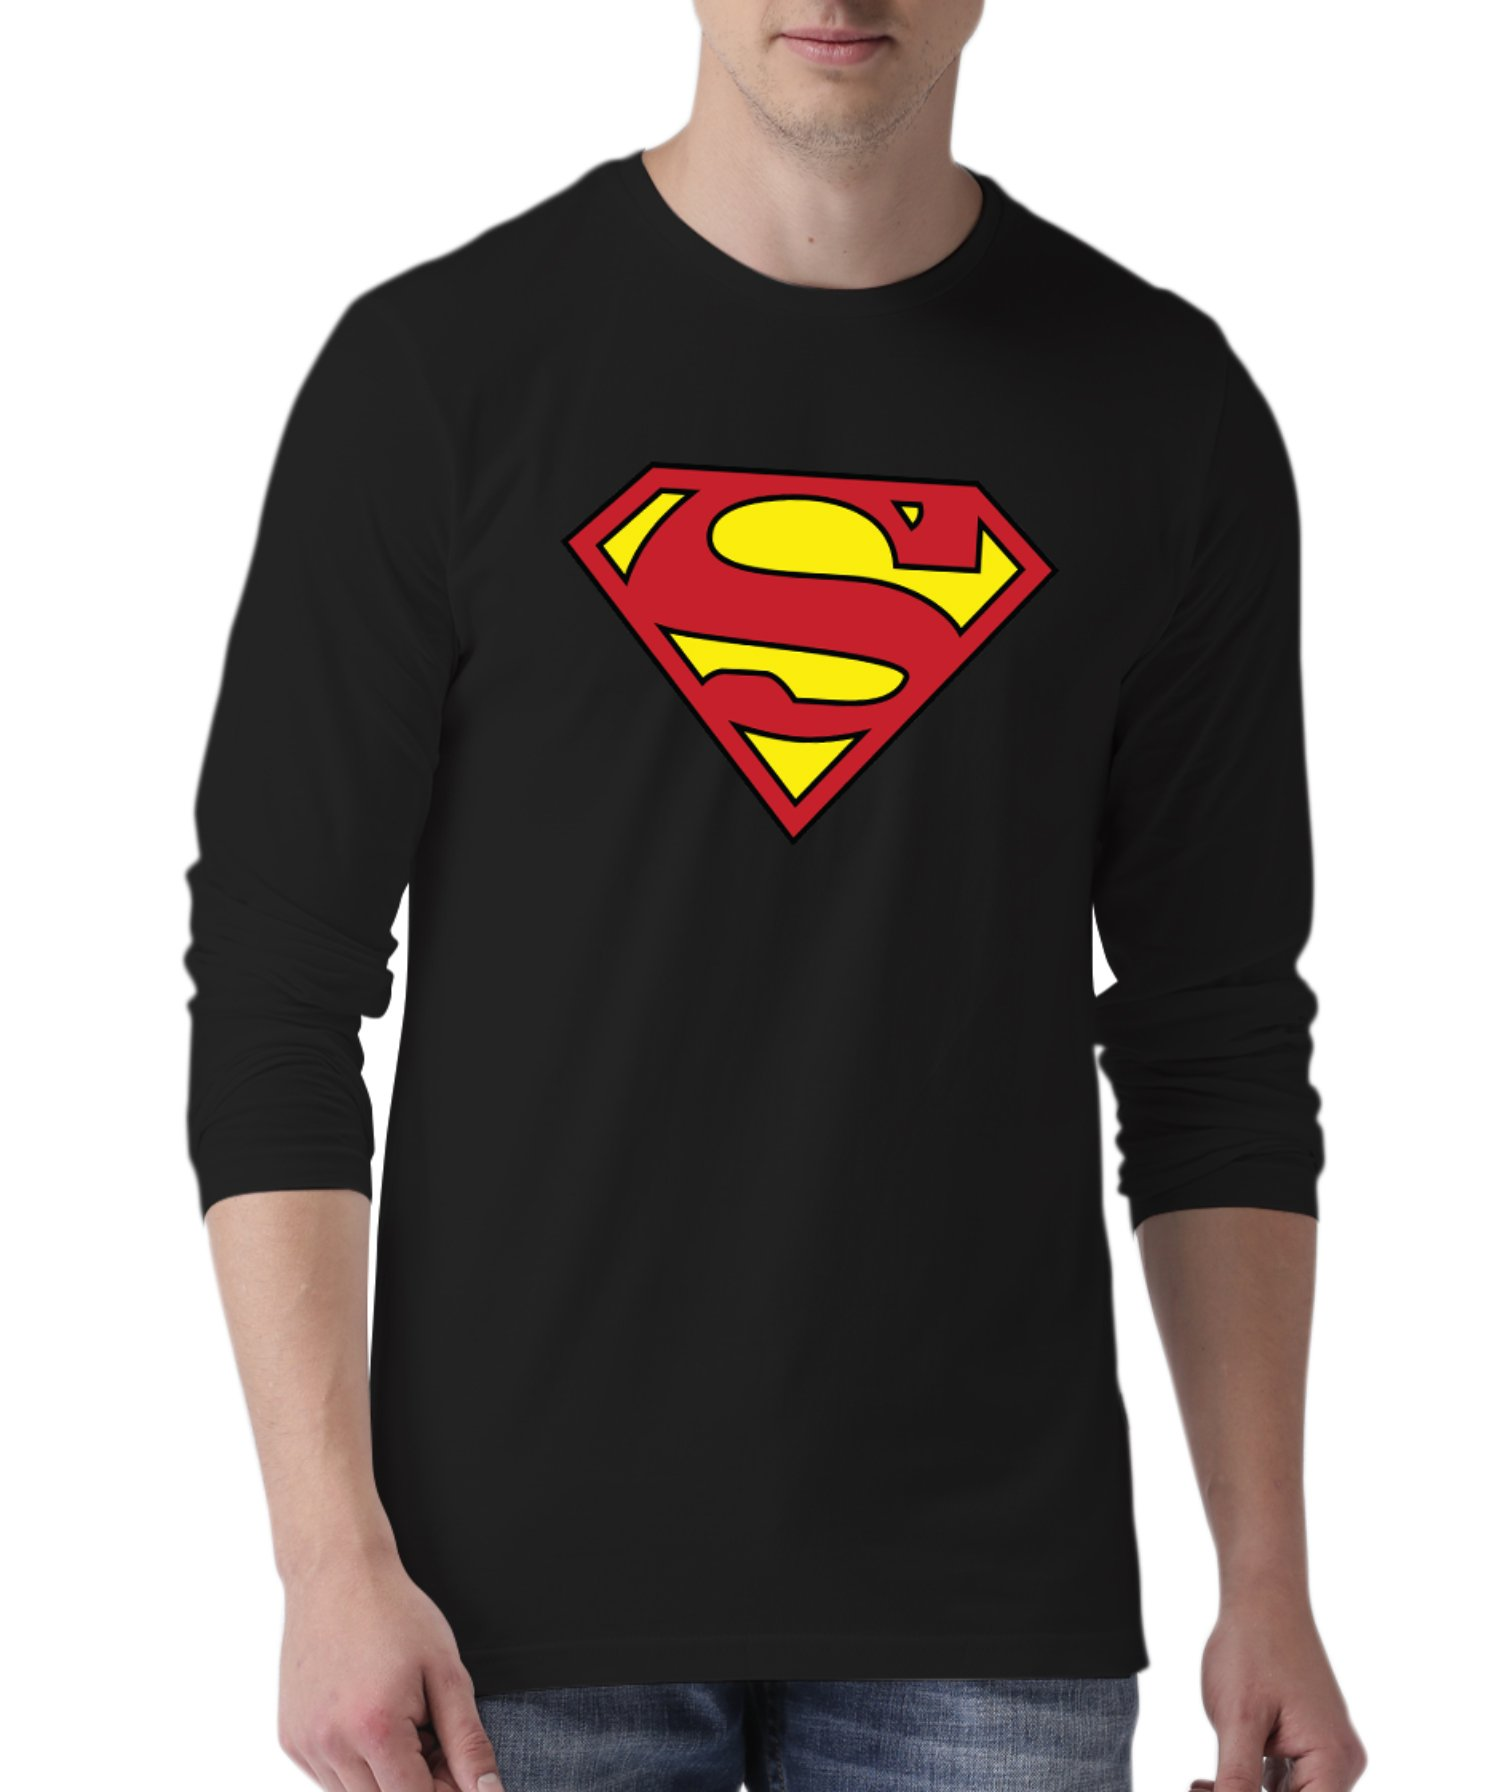 Black Mens Long Sleeve Shirts T Shirt | LGS Supermn XL